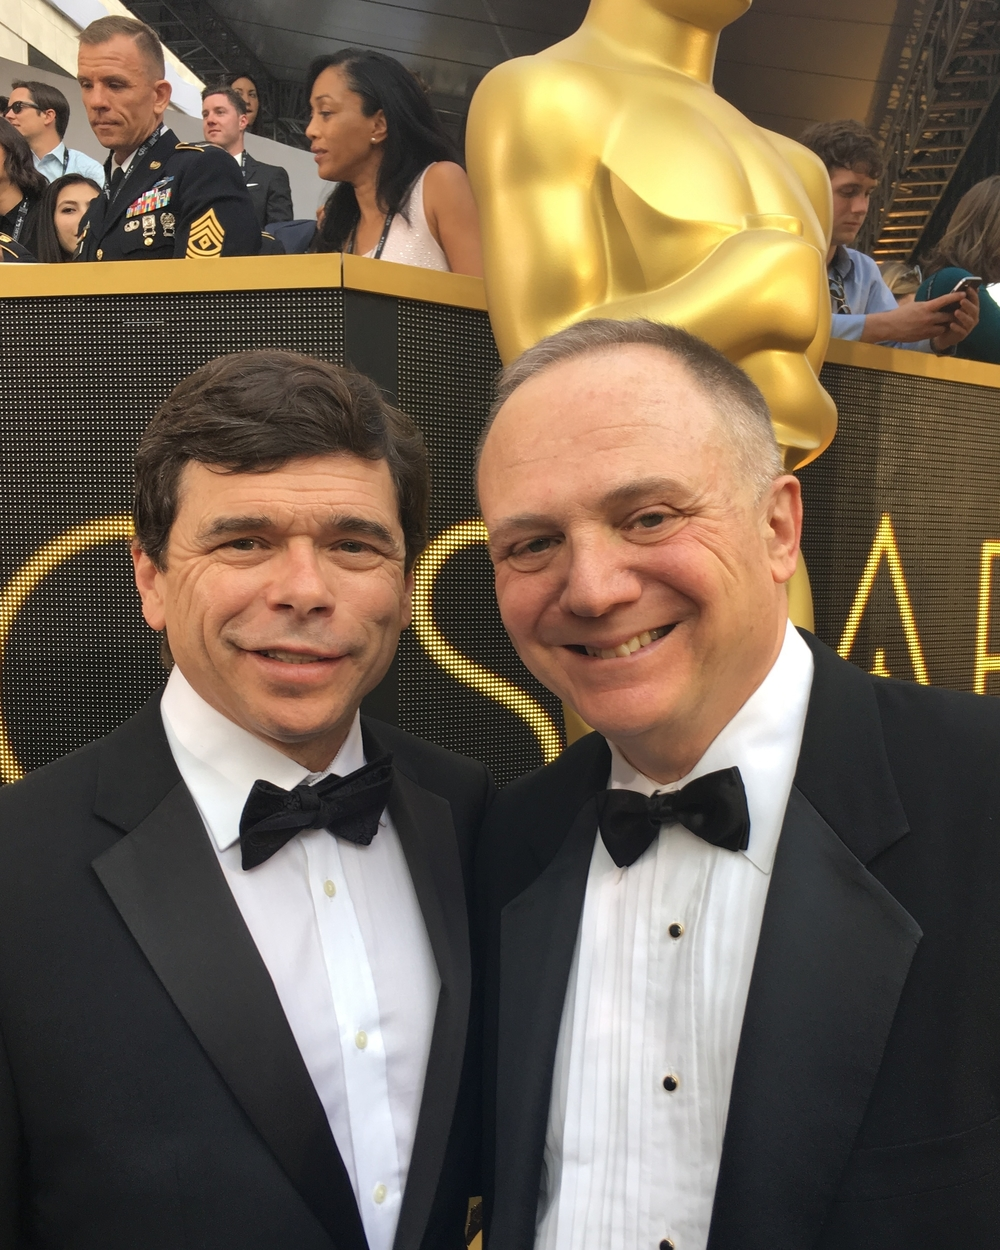 Investigative reporter Mike Rezendes (L) and UGFTV Chair Joe Pichirallo (R) at the 88th Academy Awards.  Rezendes is portrayed by Mark Ruffalo in the Best Picture and Best Original Screenplay winner  Spotlight,  directed by Tom McCarthy.  Rezendes and Pichirallo previously worked together as reporters at The Washington Post.